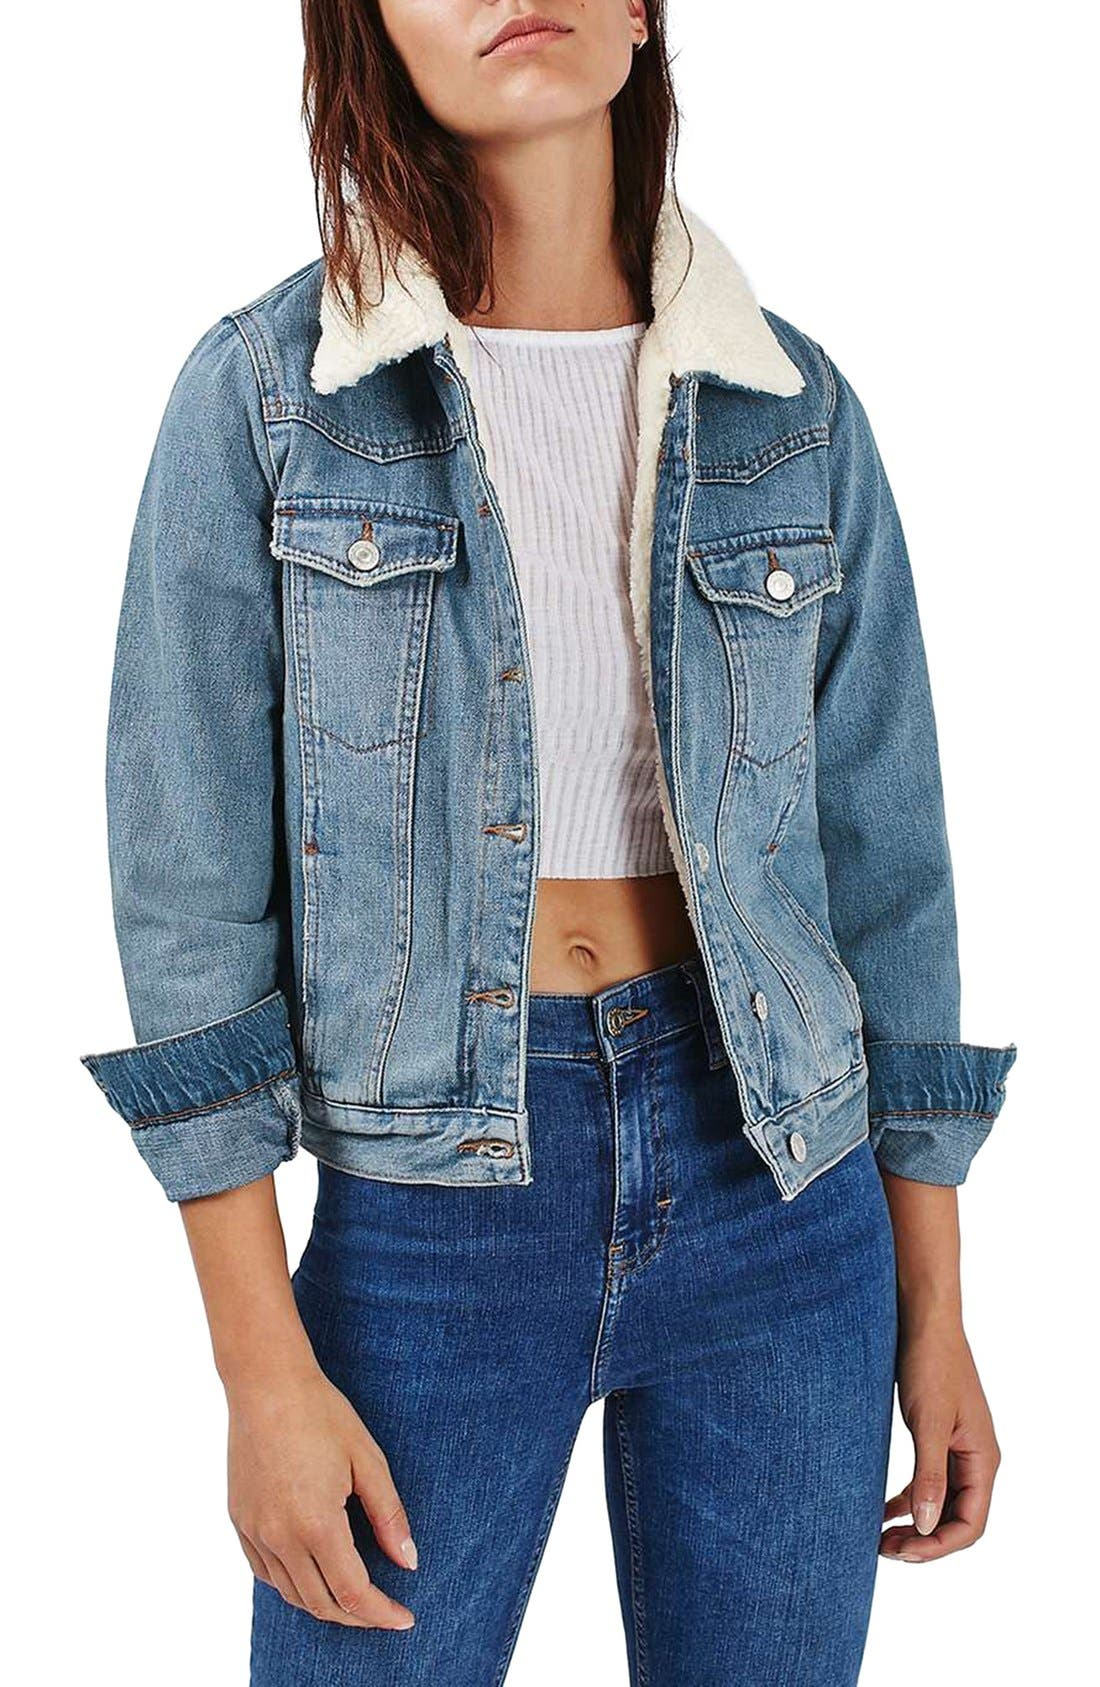 Alternate Image 1 Selected - Topshop Denim Jacket with Faux Shearling Lining